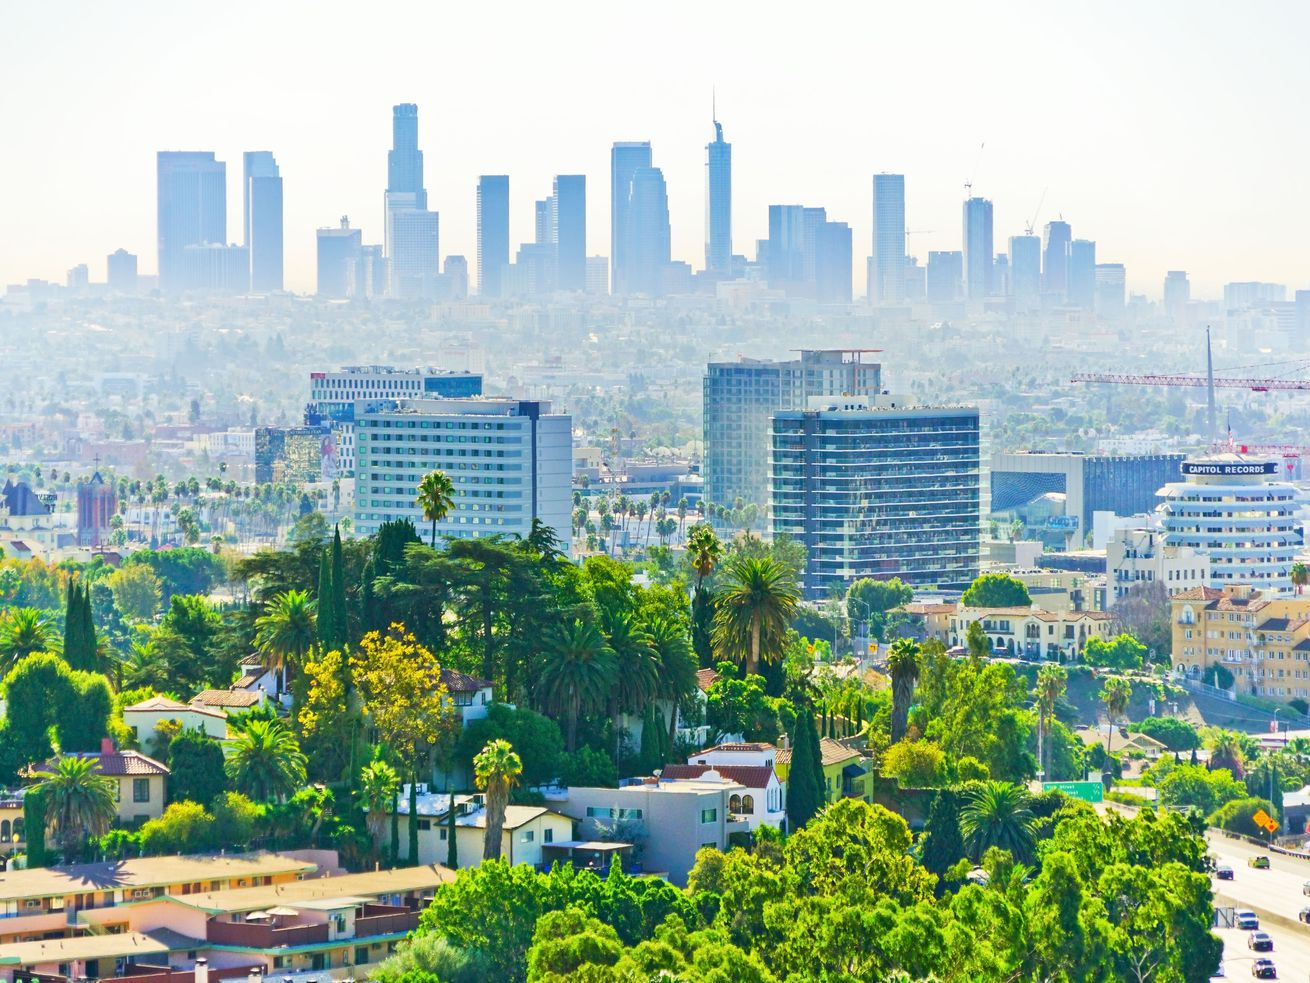 The growing Hollywood skyline in the foreground, with DTLA skyscrapers in the background.